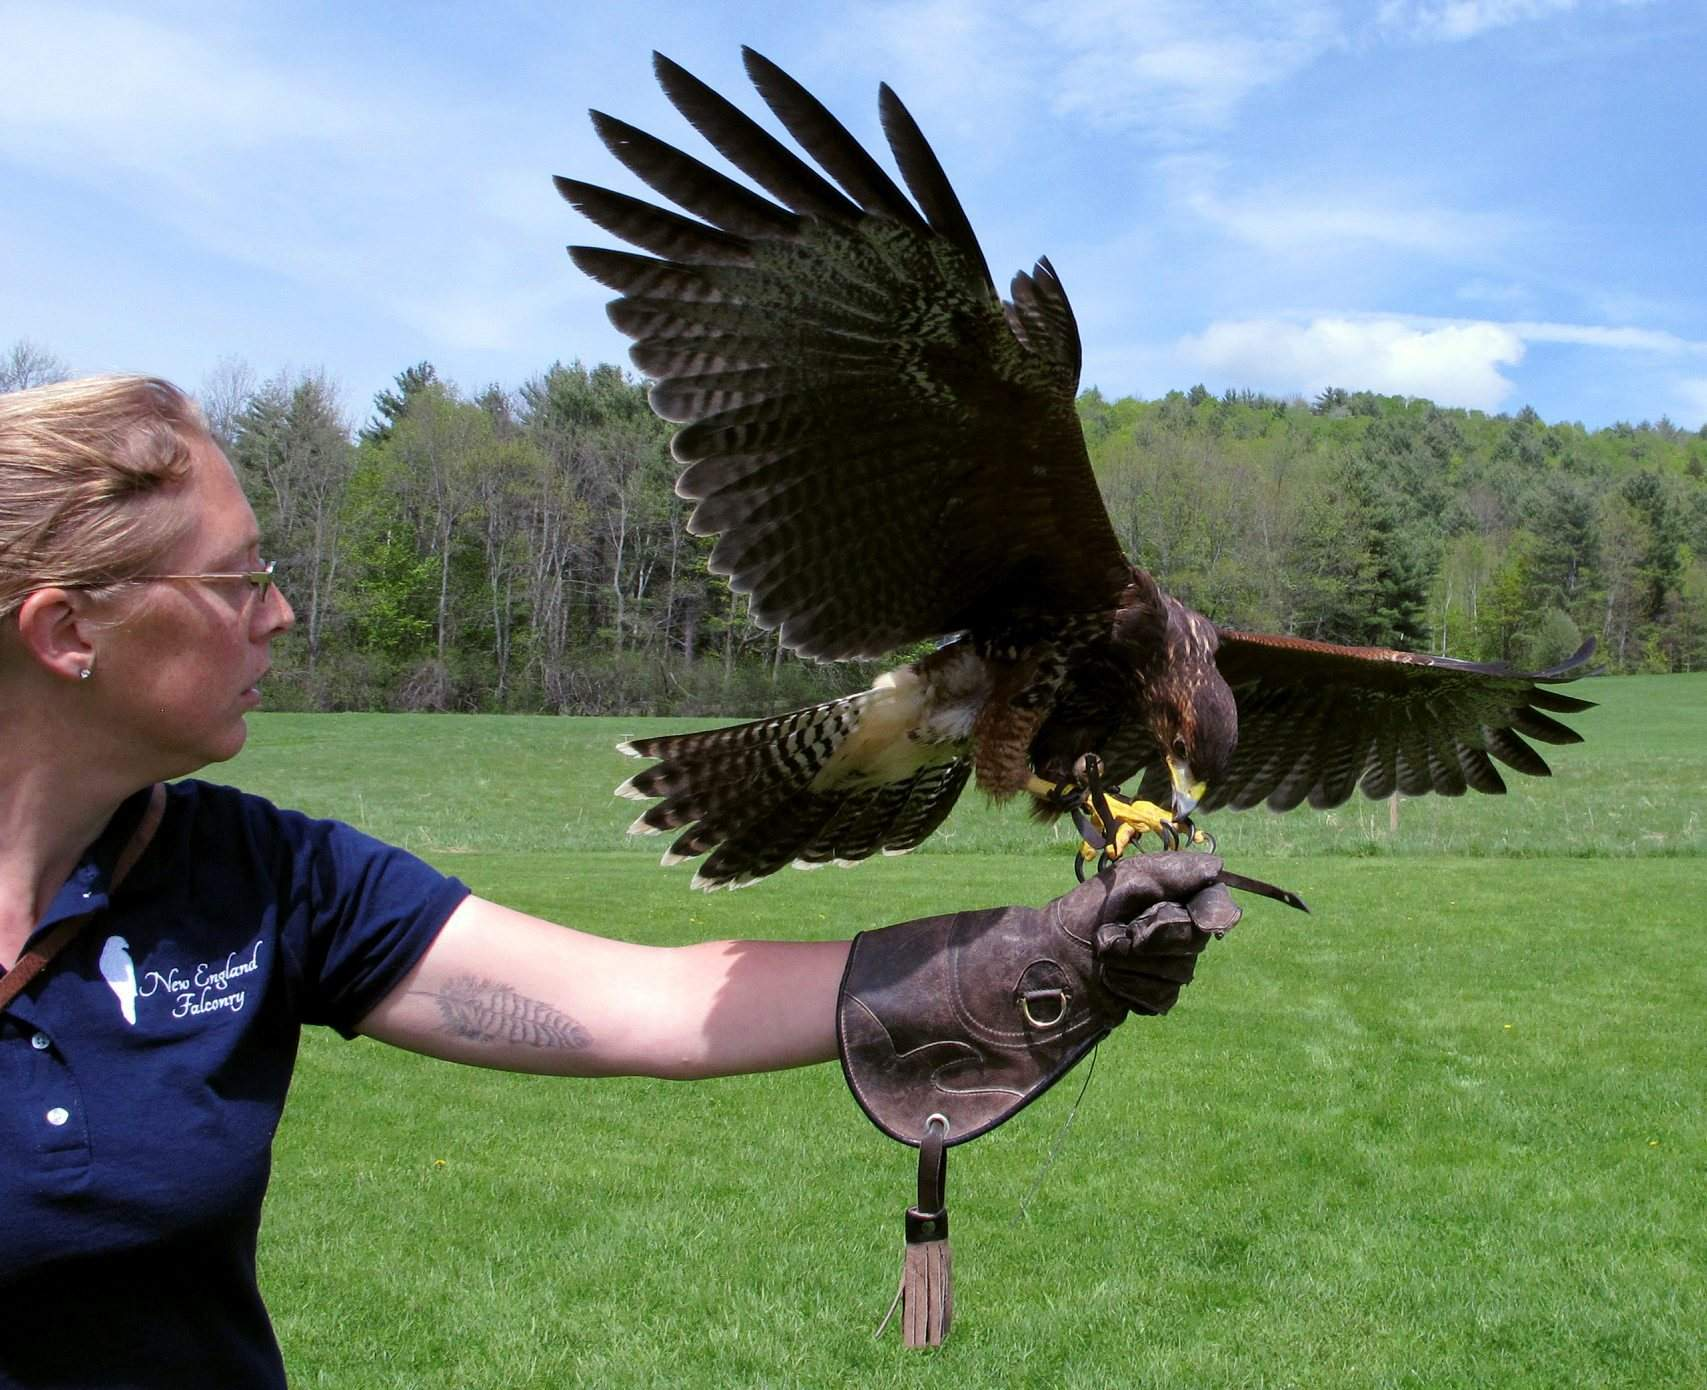 The ancient sport of falconry takes off with tourists around U S